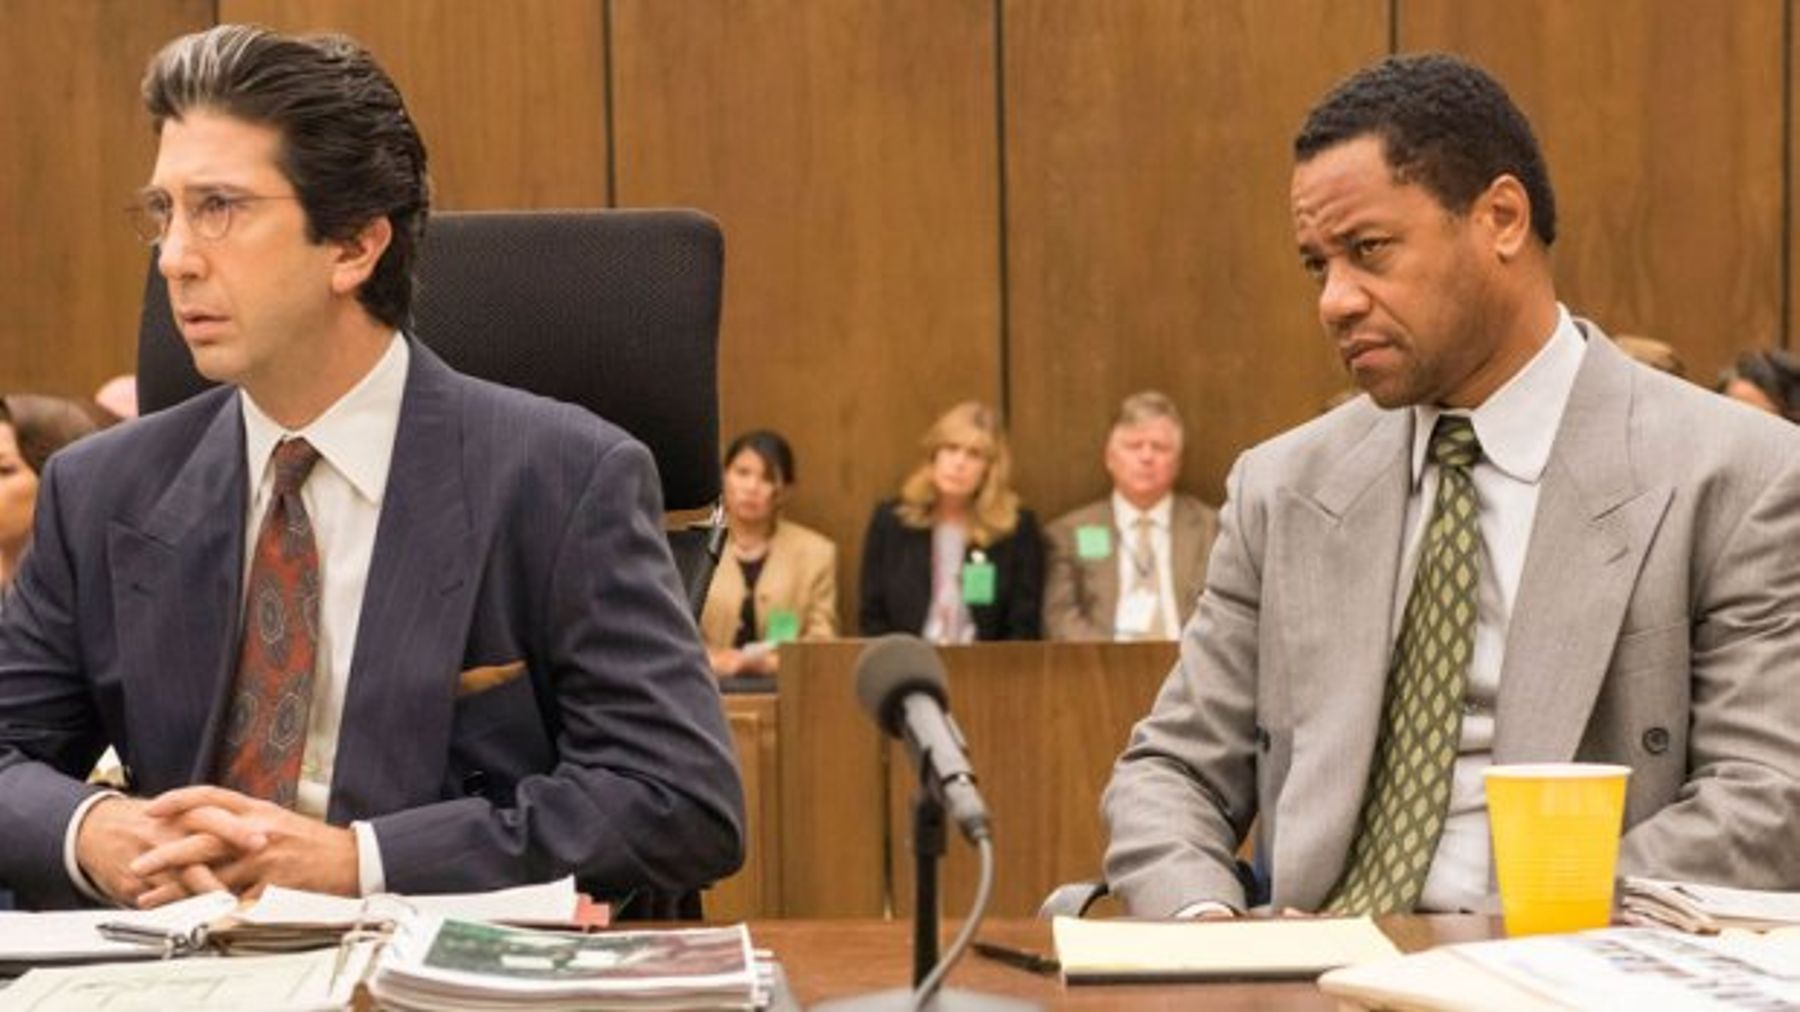 Oj simpson trial cast